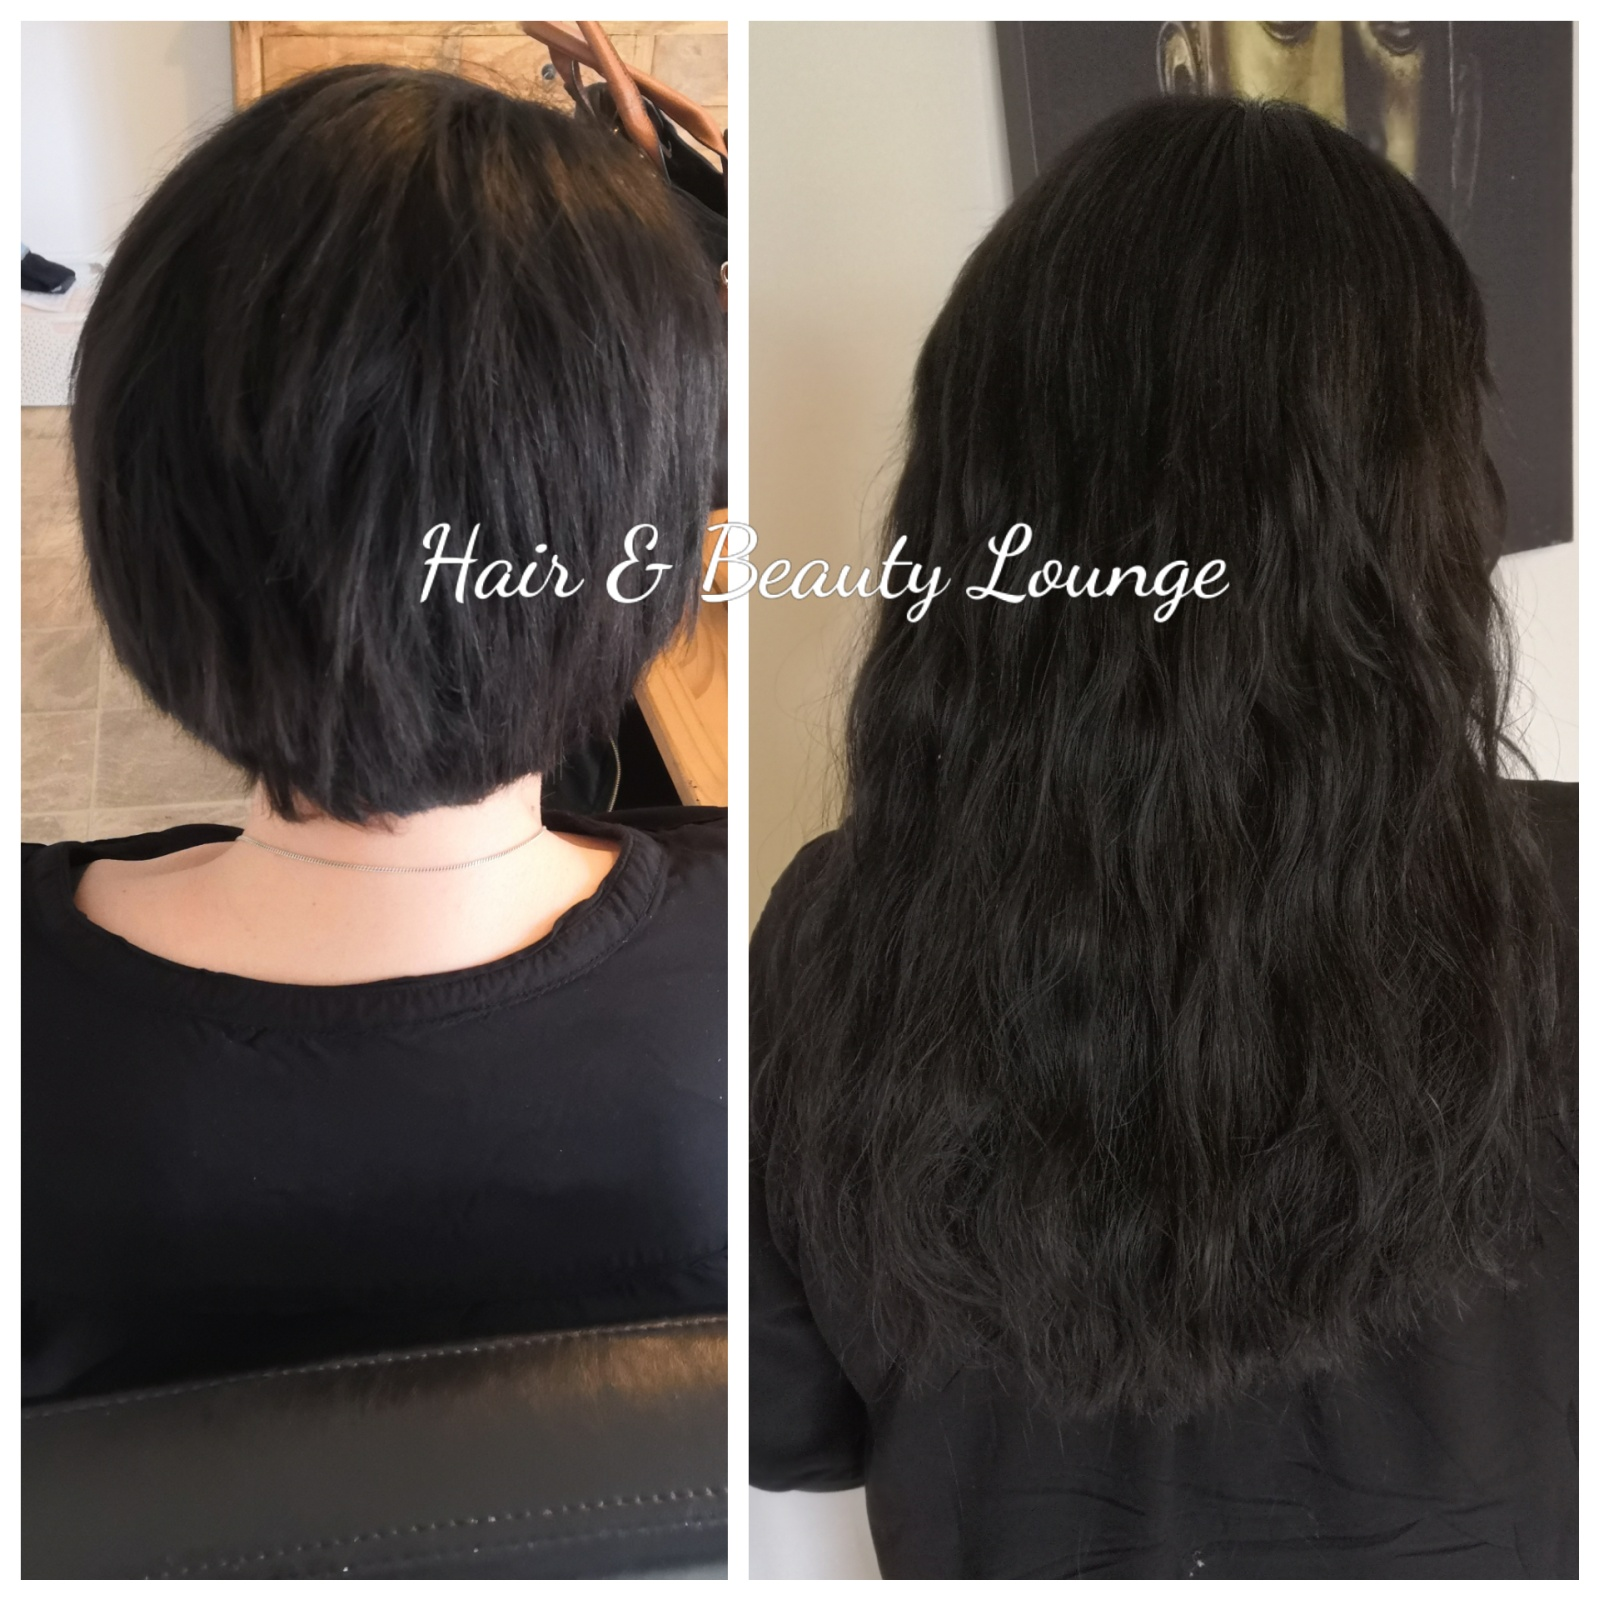 Hairextensions 30-06-2019